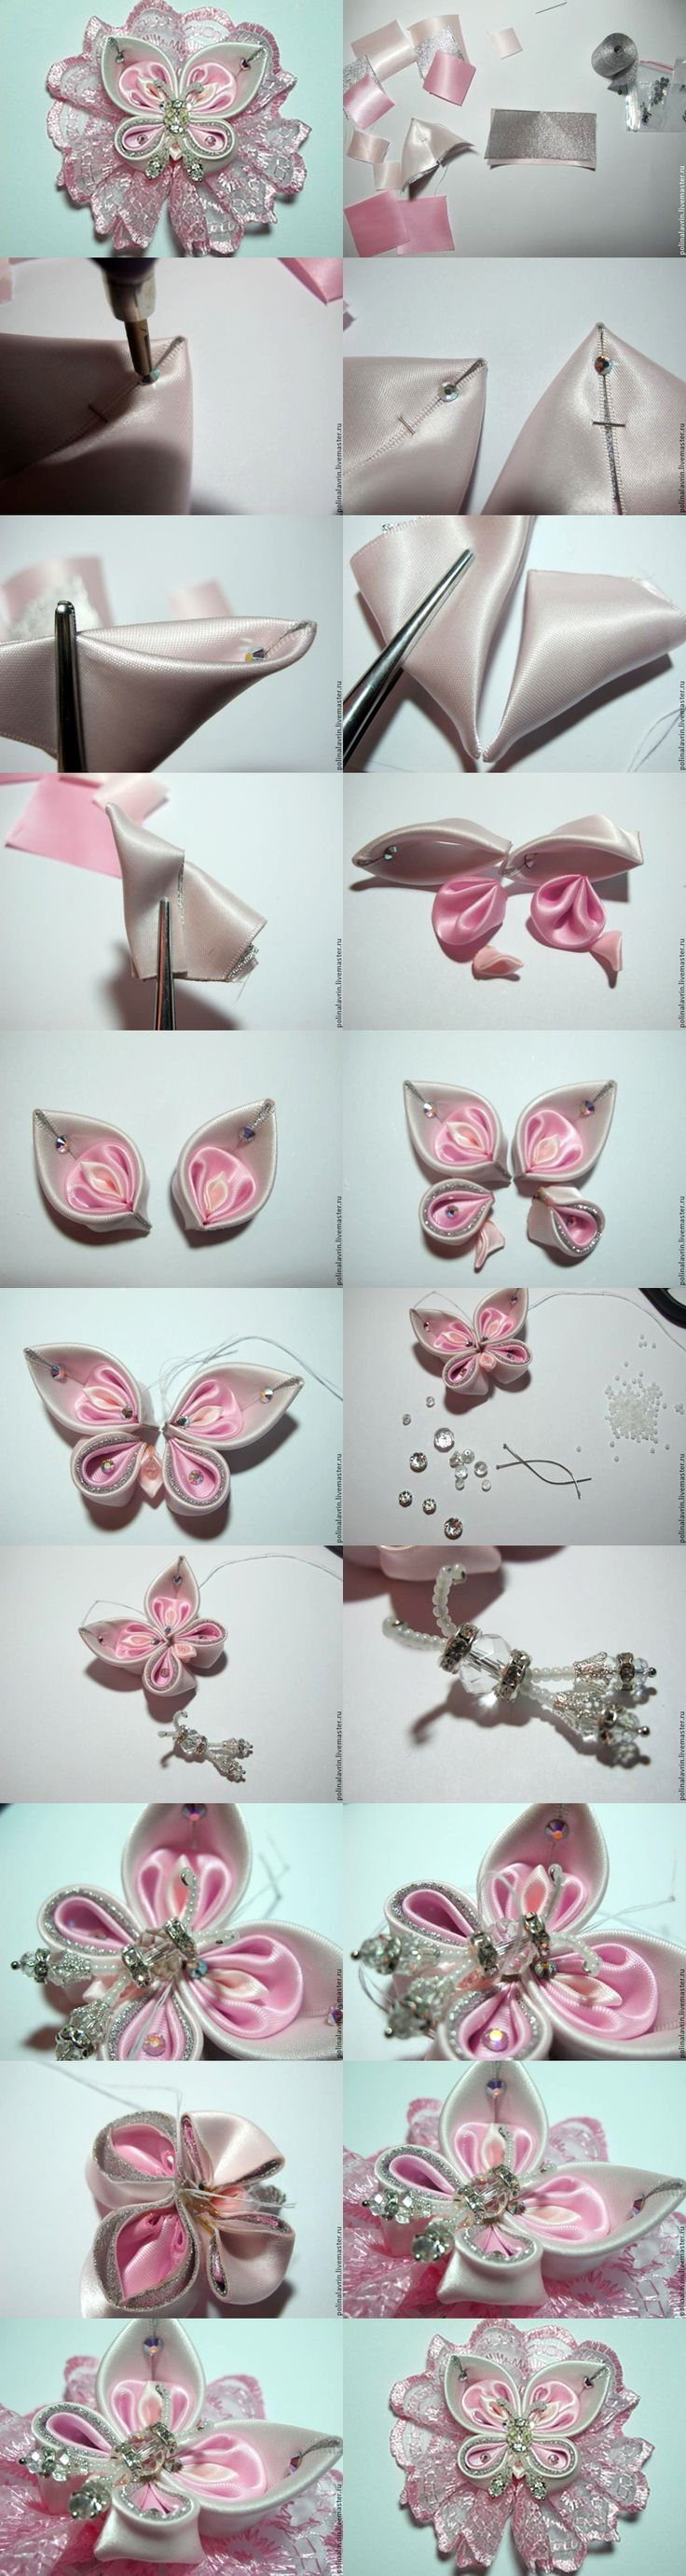 kanzashi mariposa tutorial vlinder in roze met wit, plus tutorial butterfly